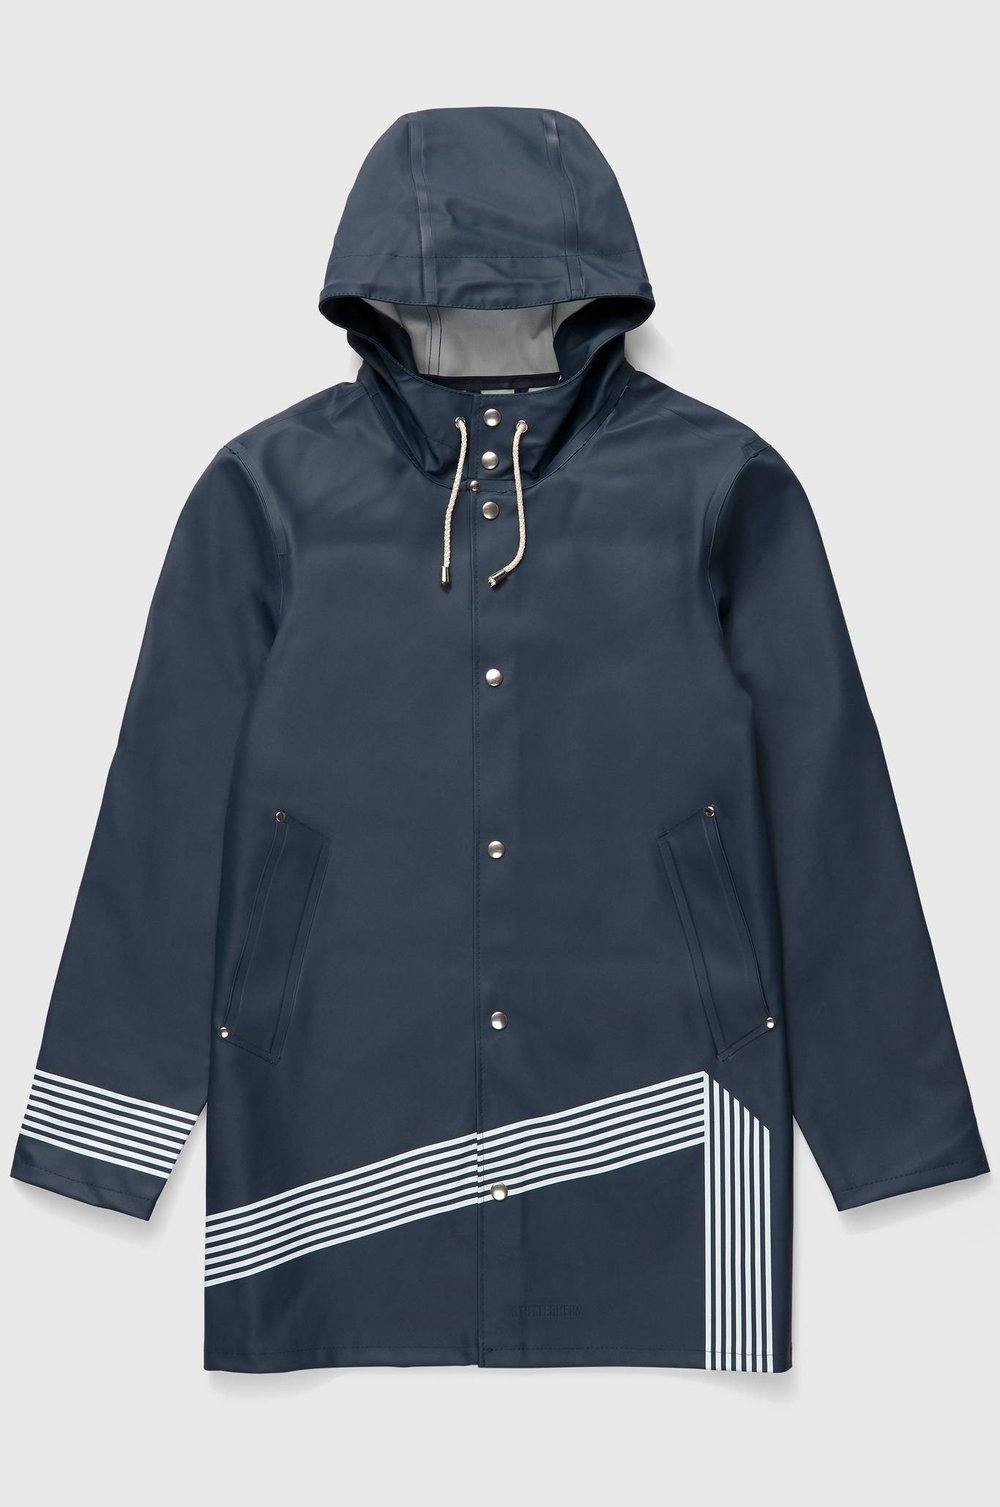 downsized_stutterheim_boo_man_coat_band_of_outsiders_navy_product_front_edit.jpg